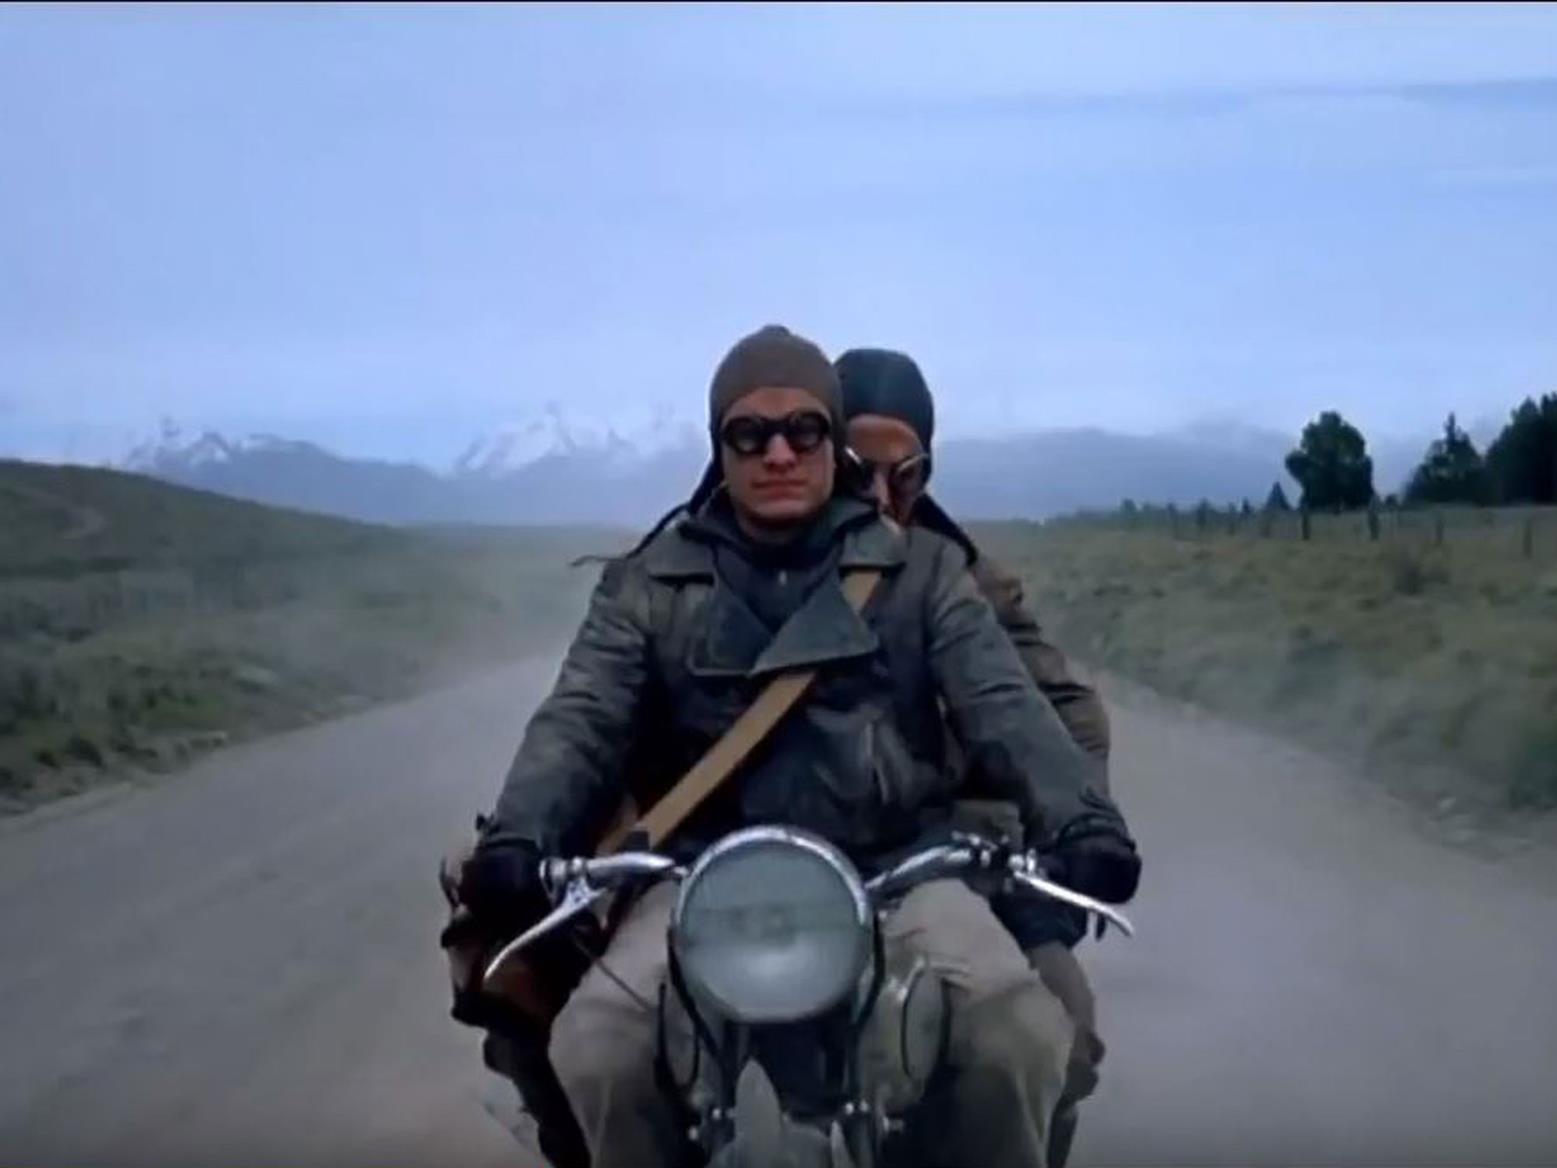 The Motorcycle Diaries turns 15